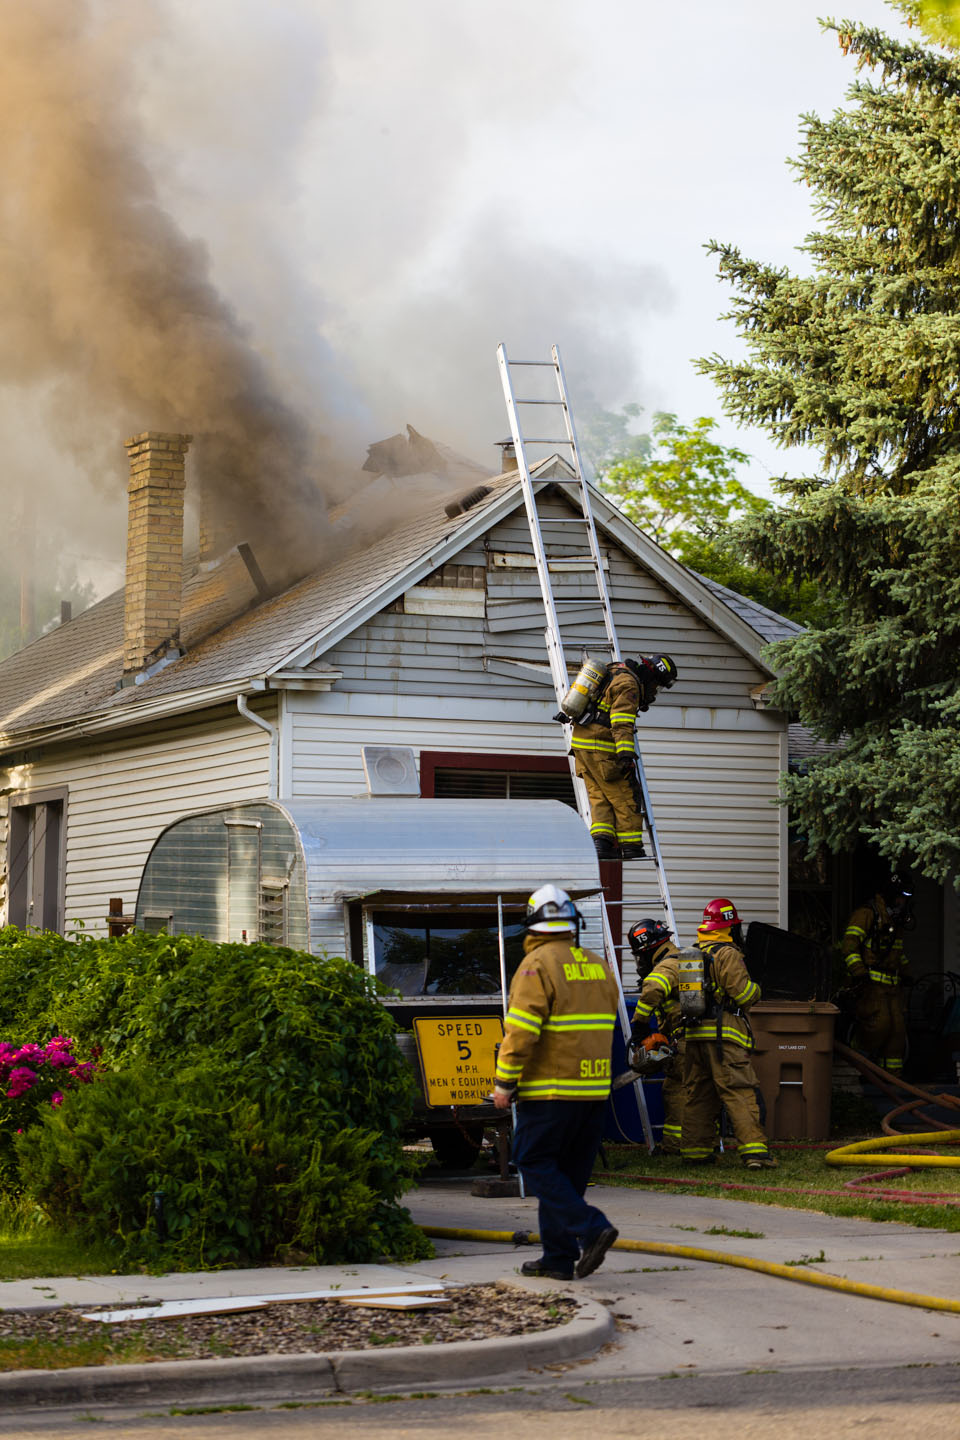 Fire fighters combat a house fire